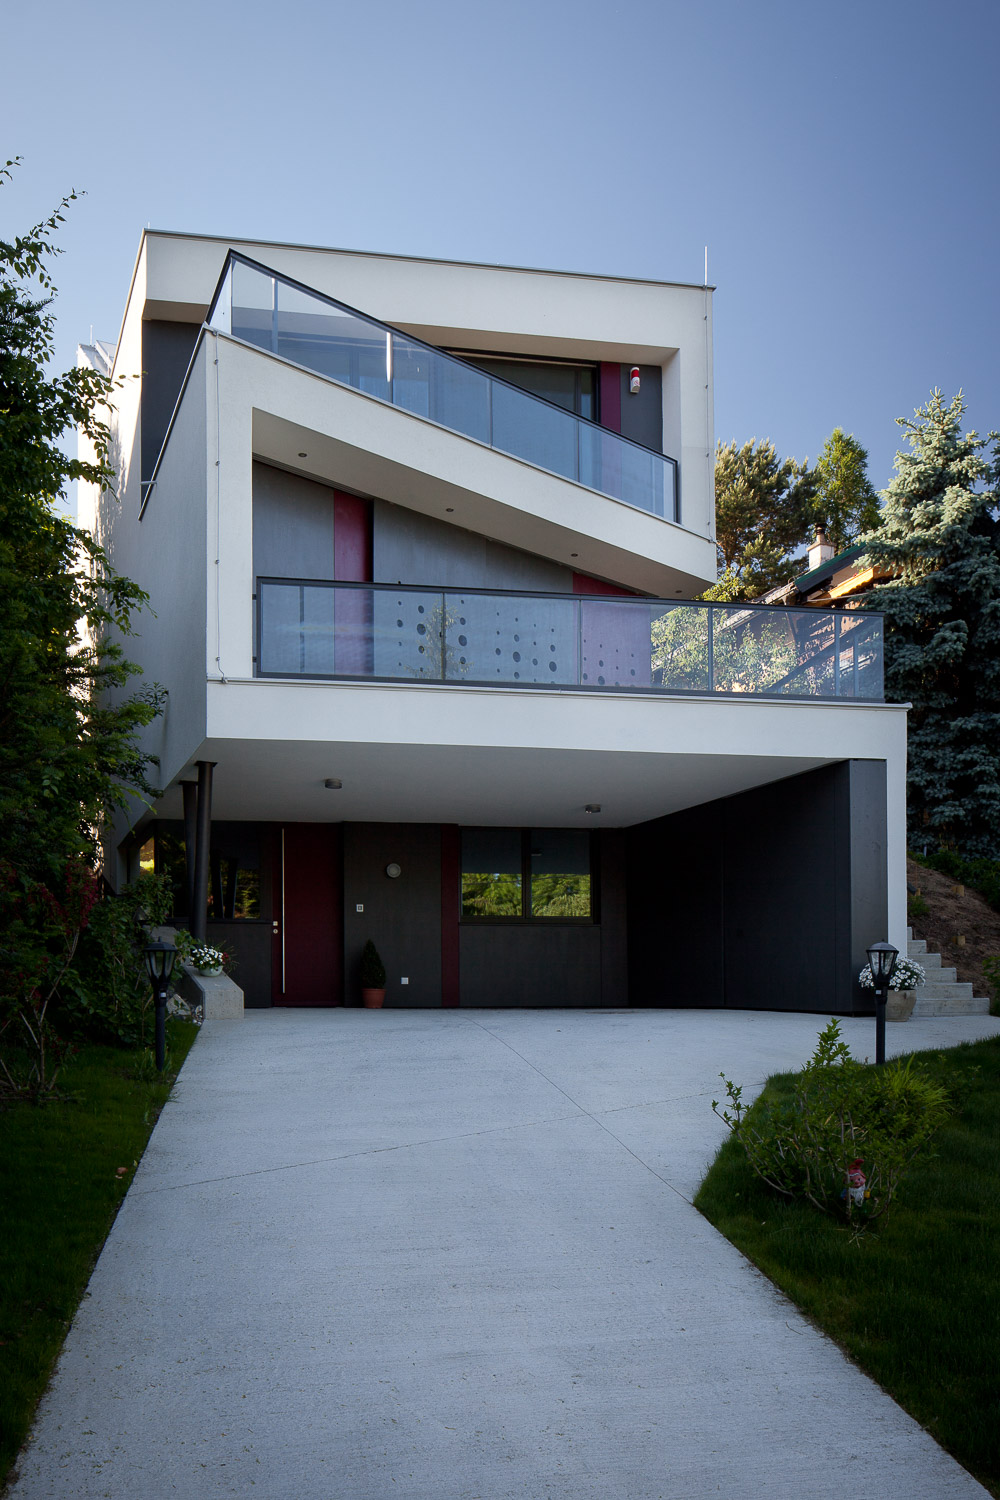 Haus Architektur Photography Architecture By Kurt Hoerbst